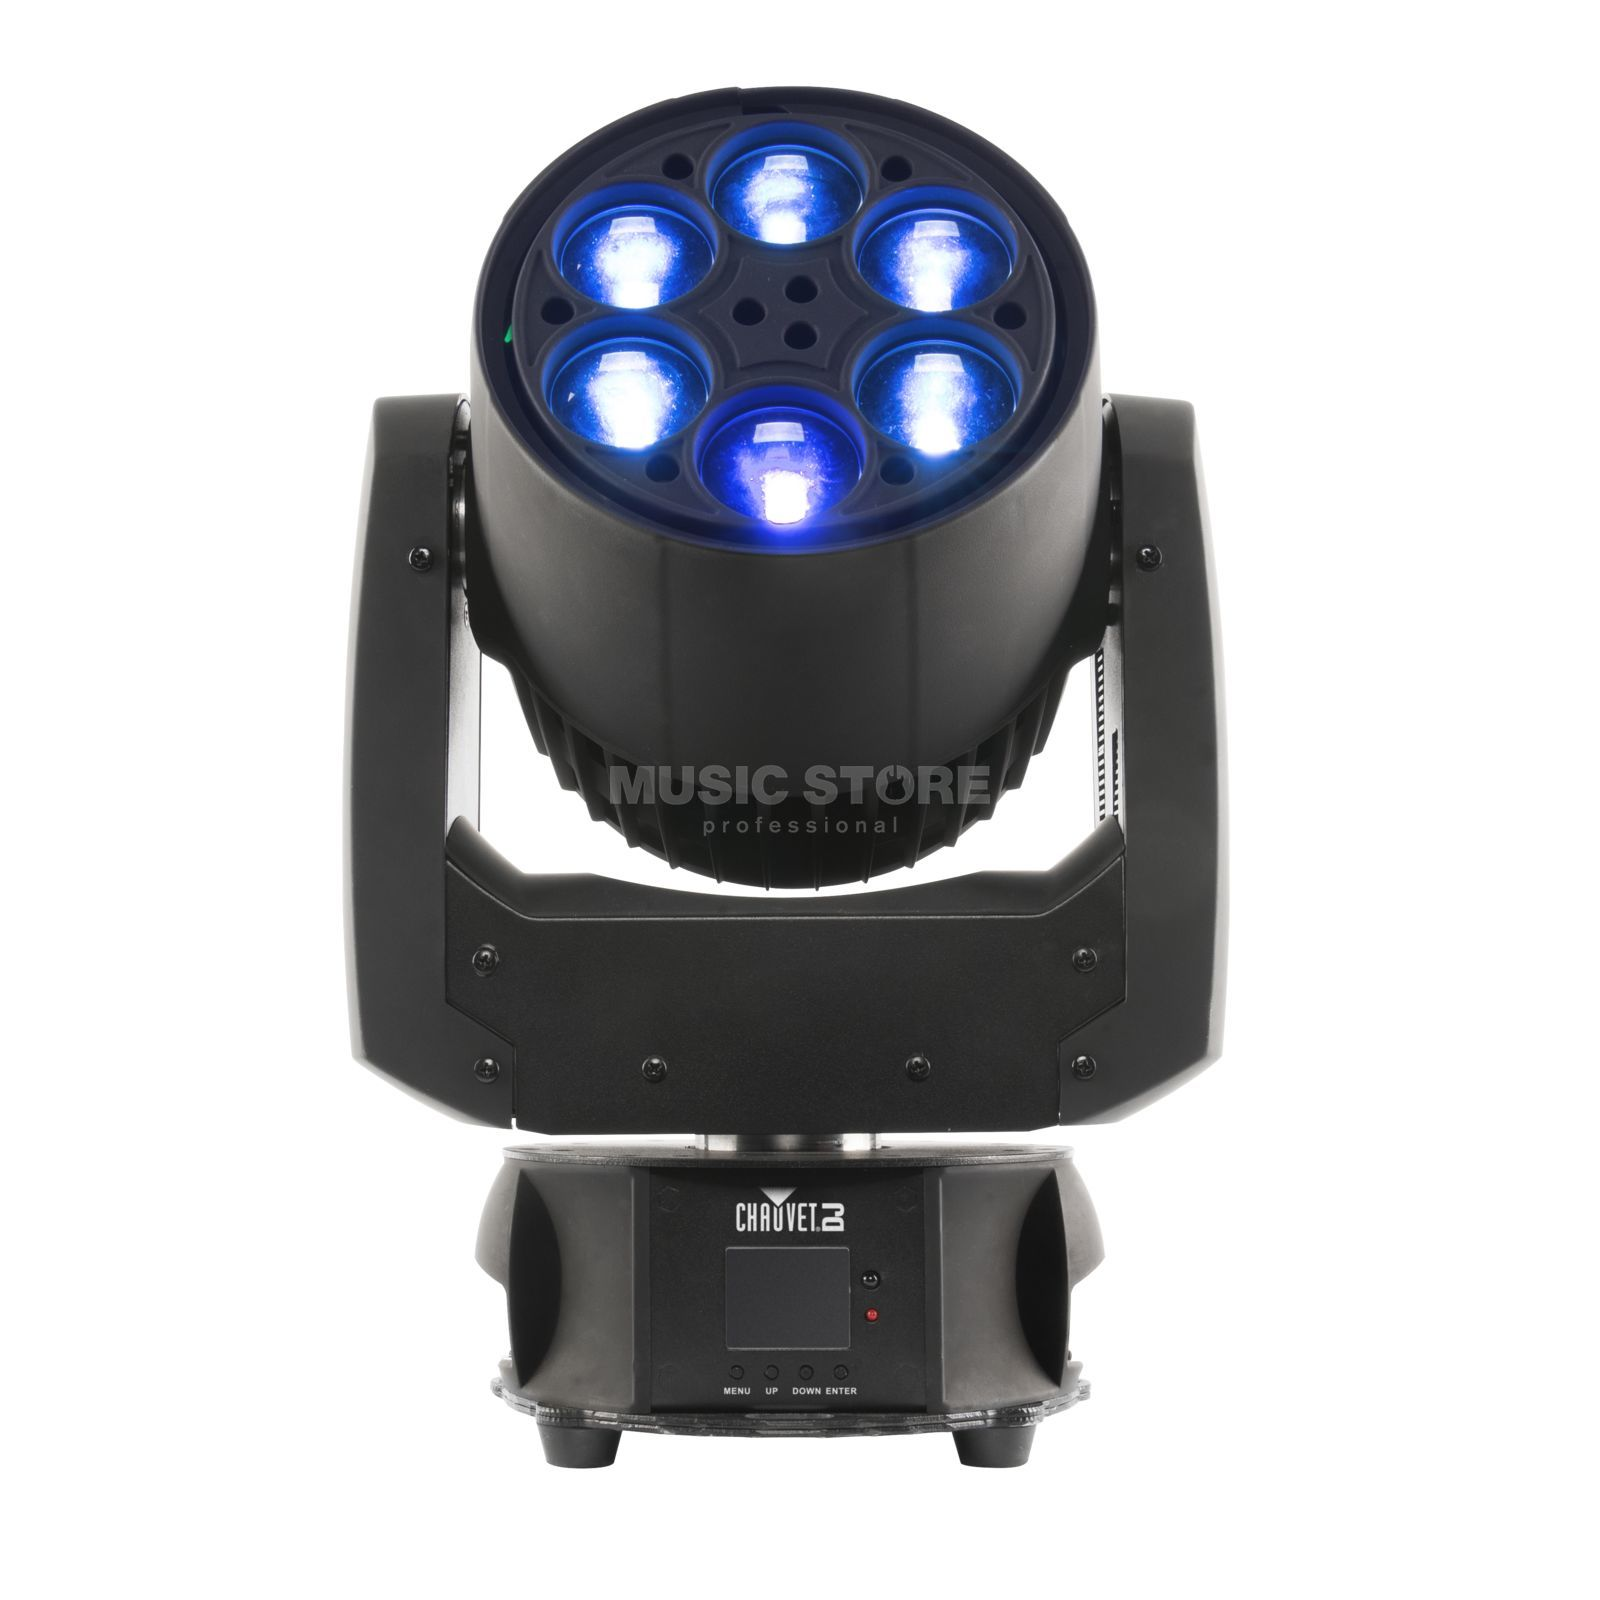 Chauvet DJ Intimidator Trio 6 x 21W Beam / Wash Moving Head Immagine prodotto